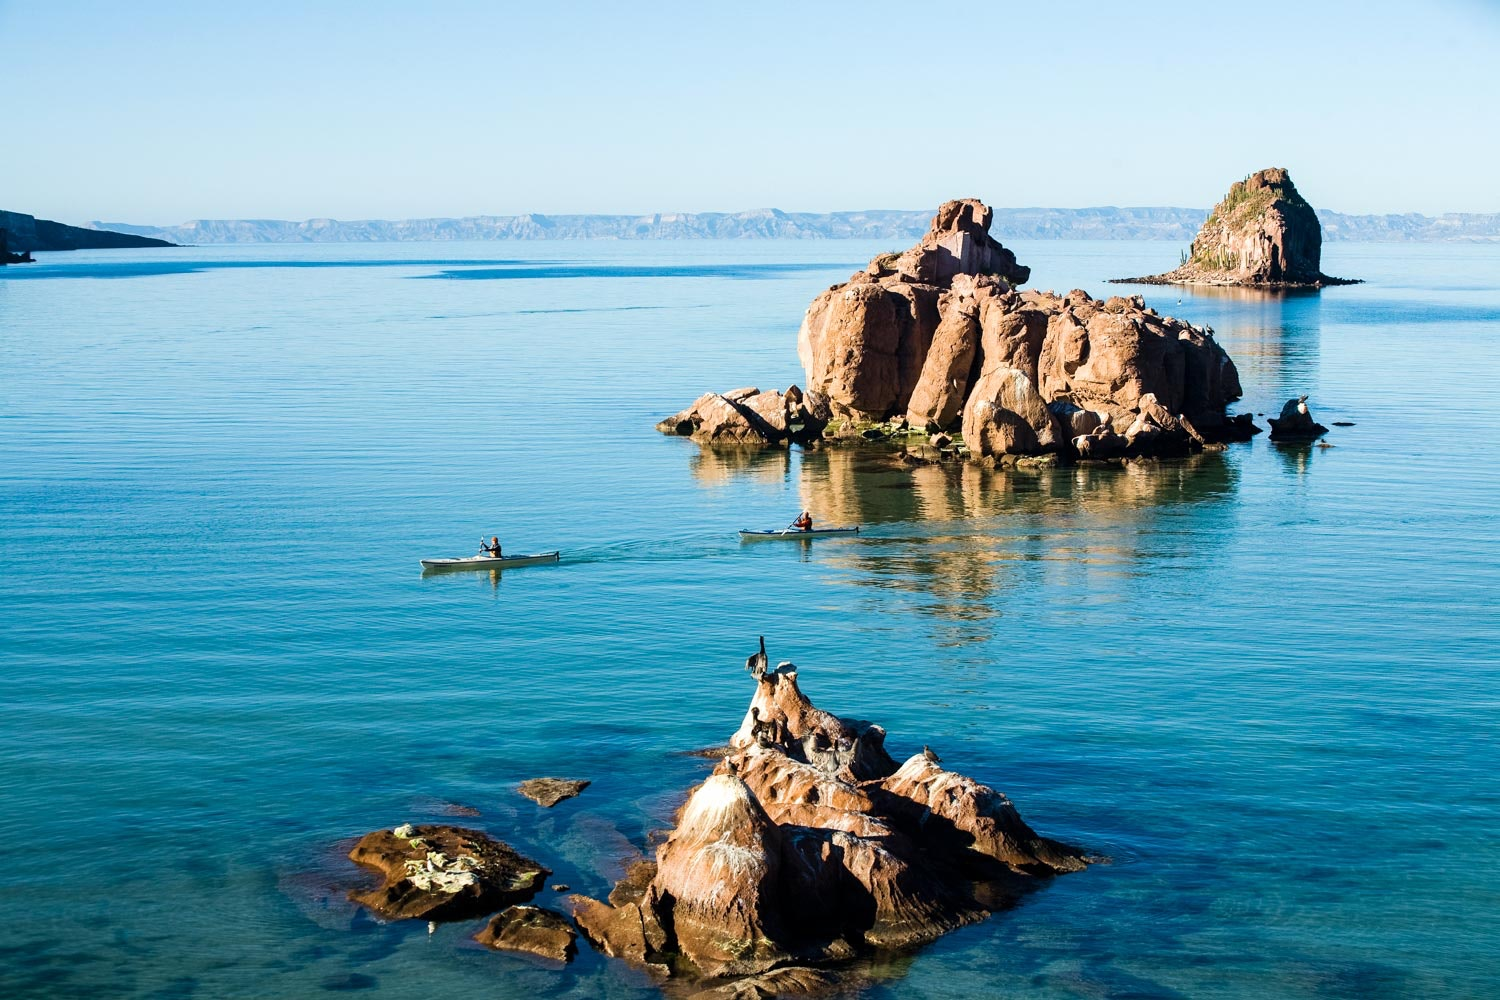 Navigate the Sea of Cortez with O.A.R.S.